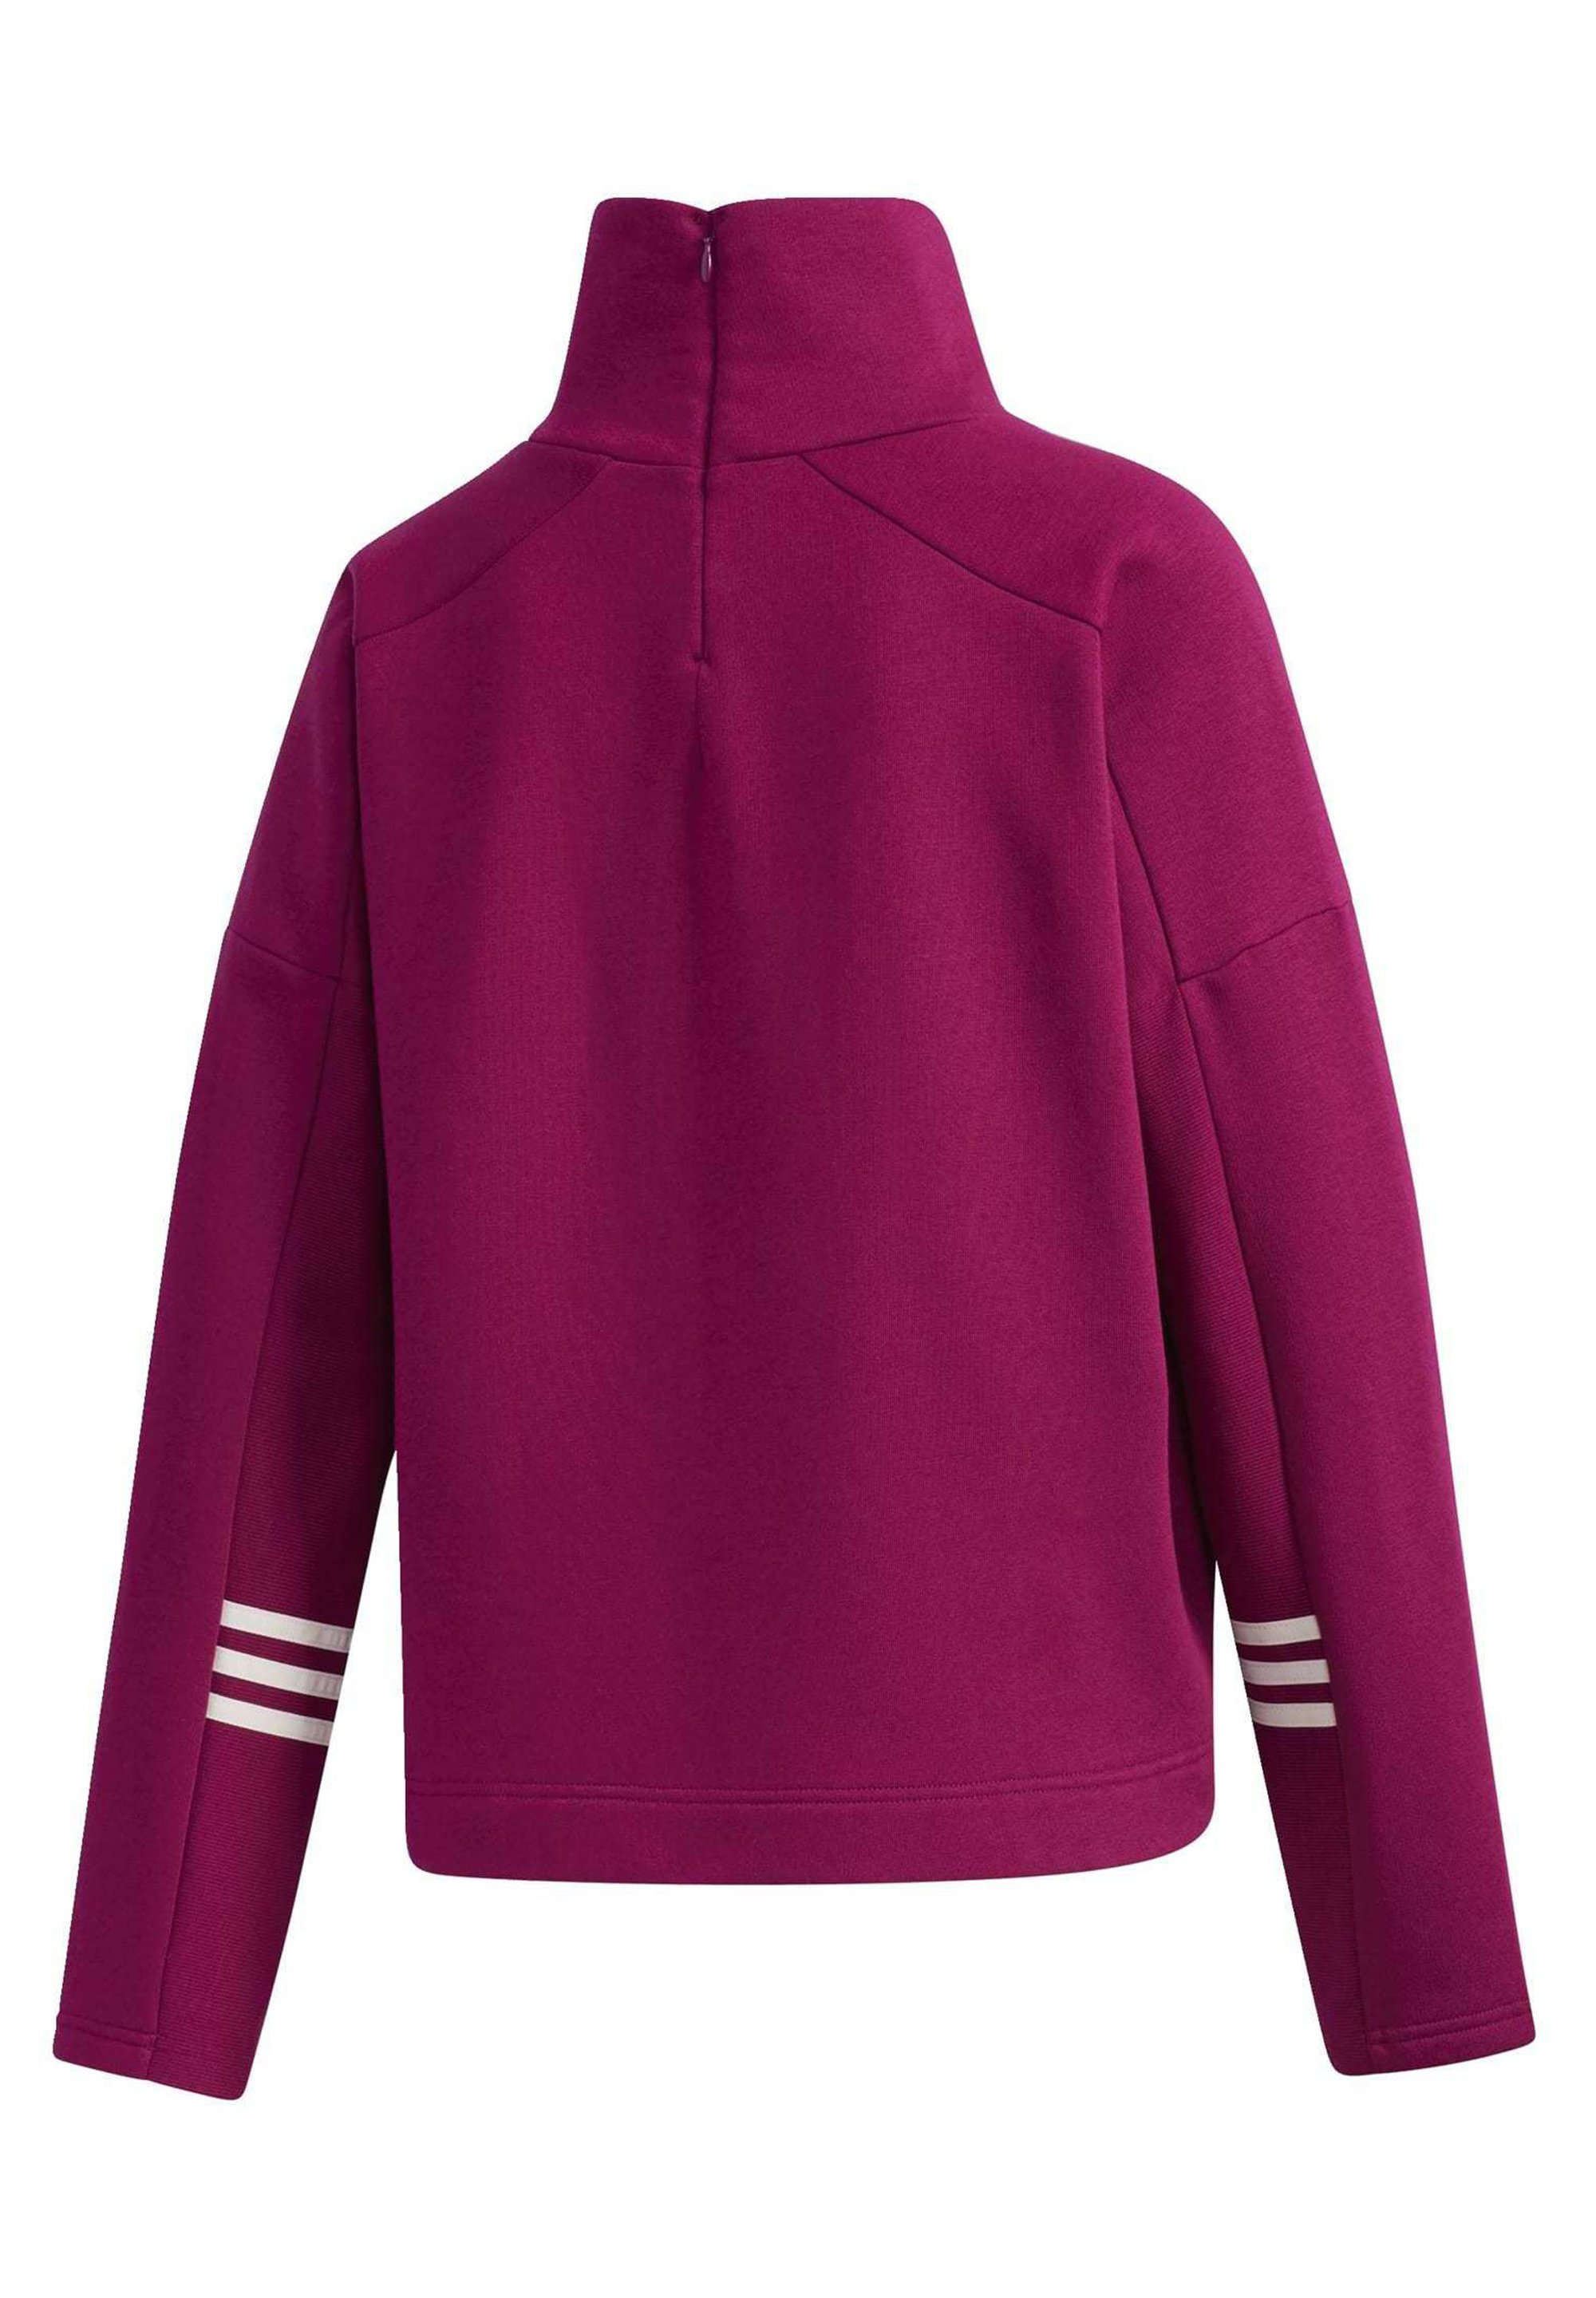 adidas Performance ESSENTIALS COMFORT FUNNEL NECK SWEATSHIRT - Sweatshirt - purple qfMR0